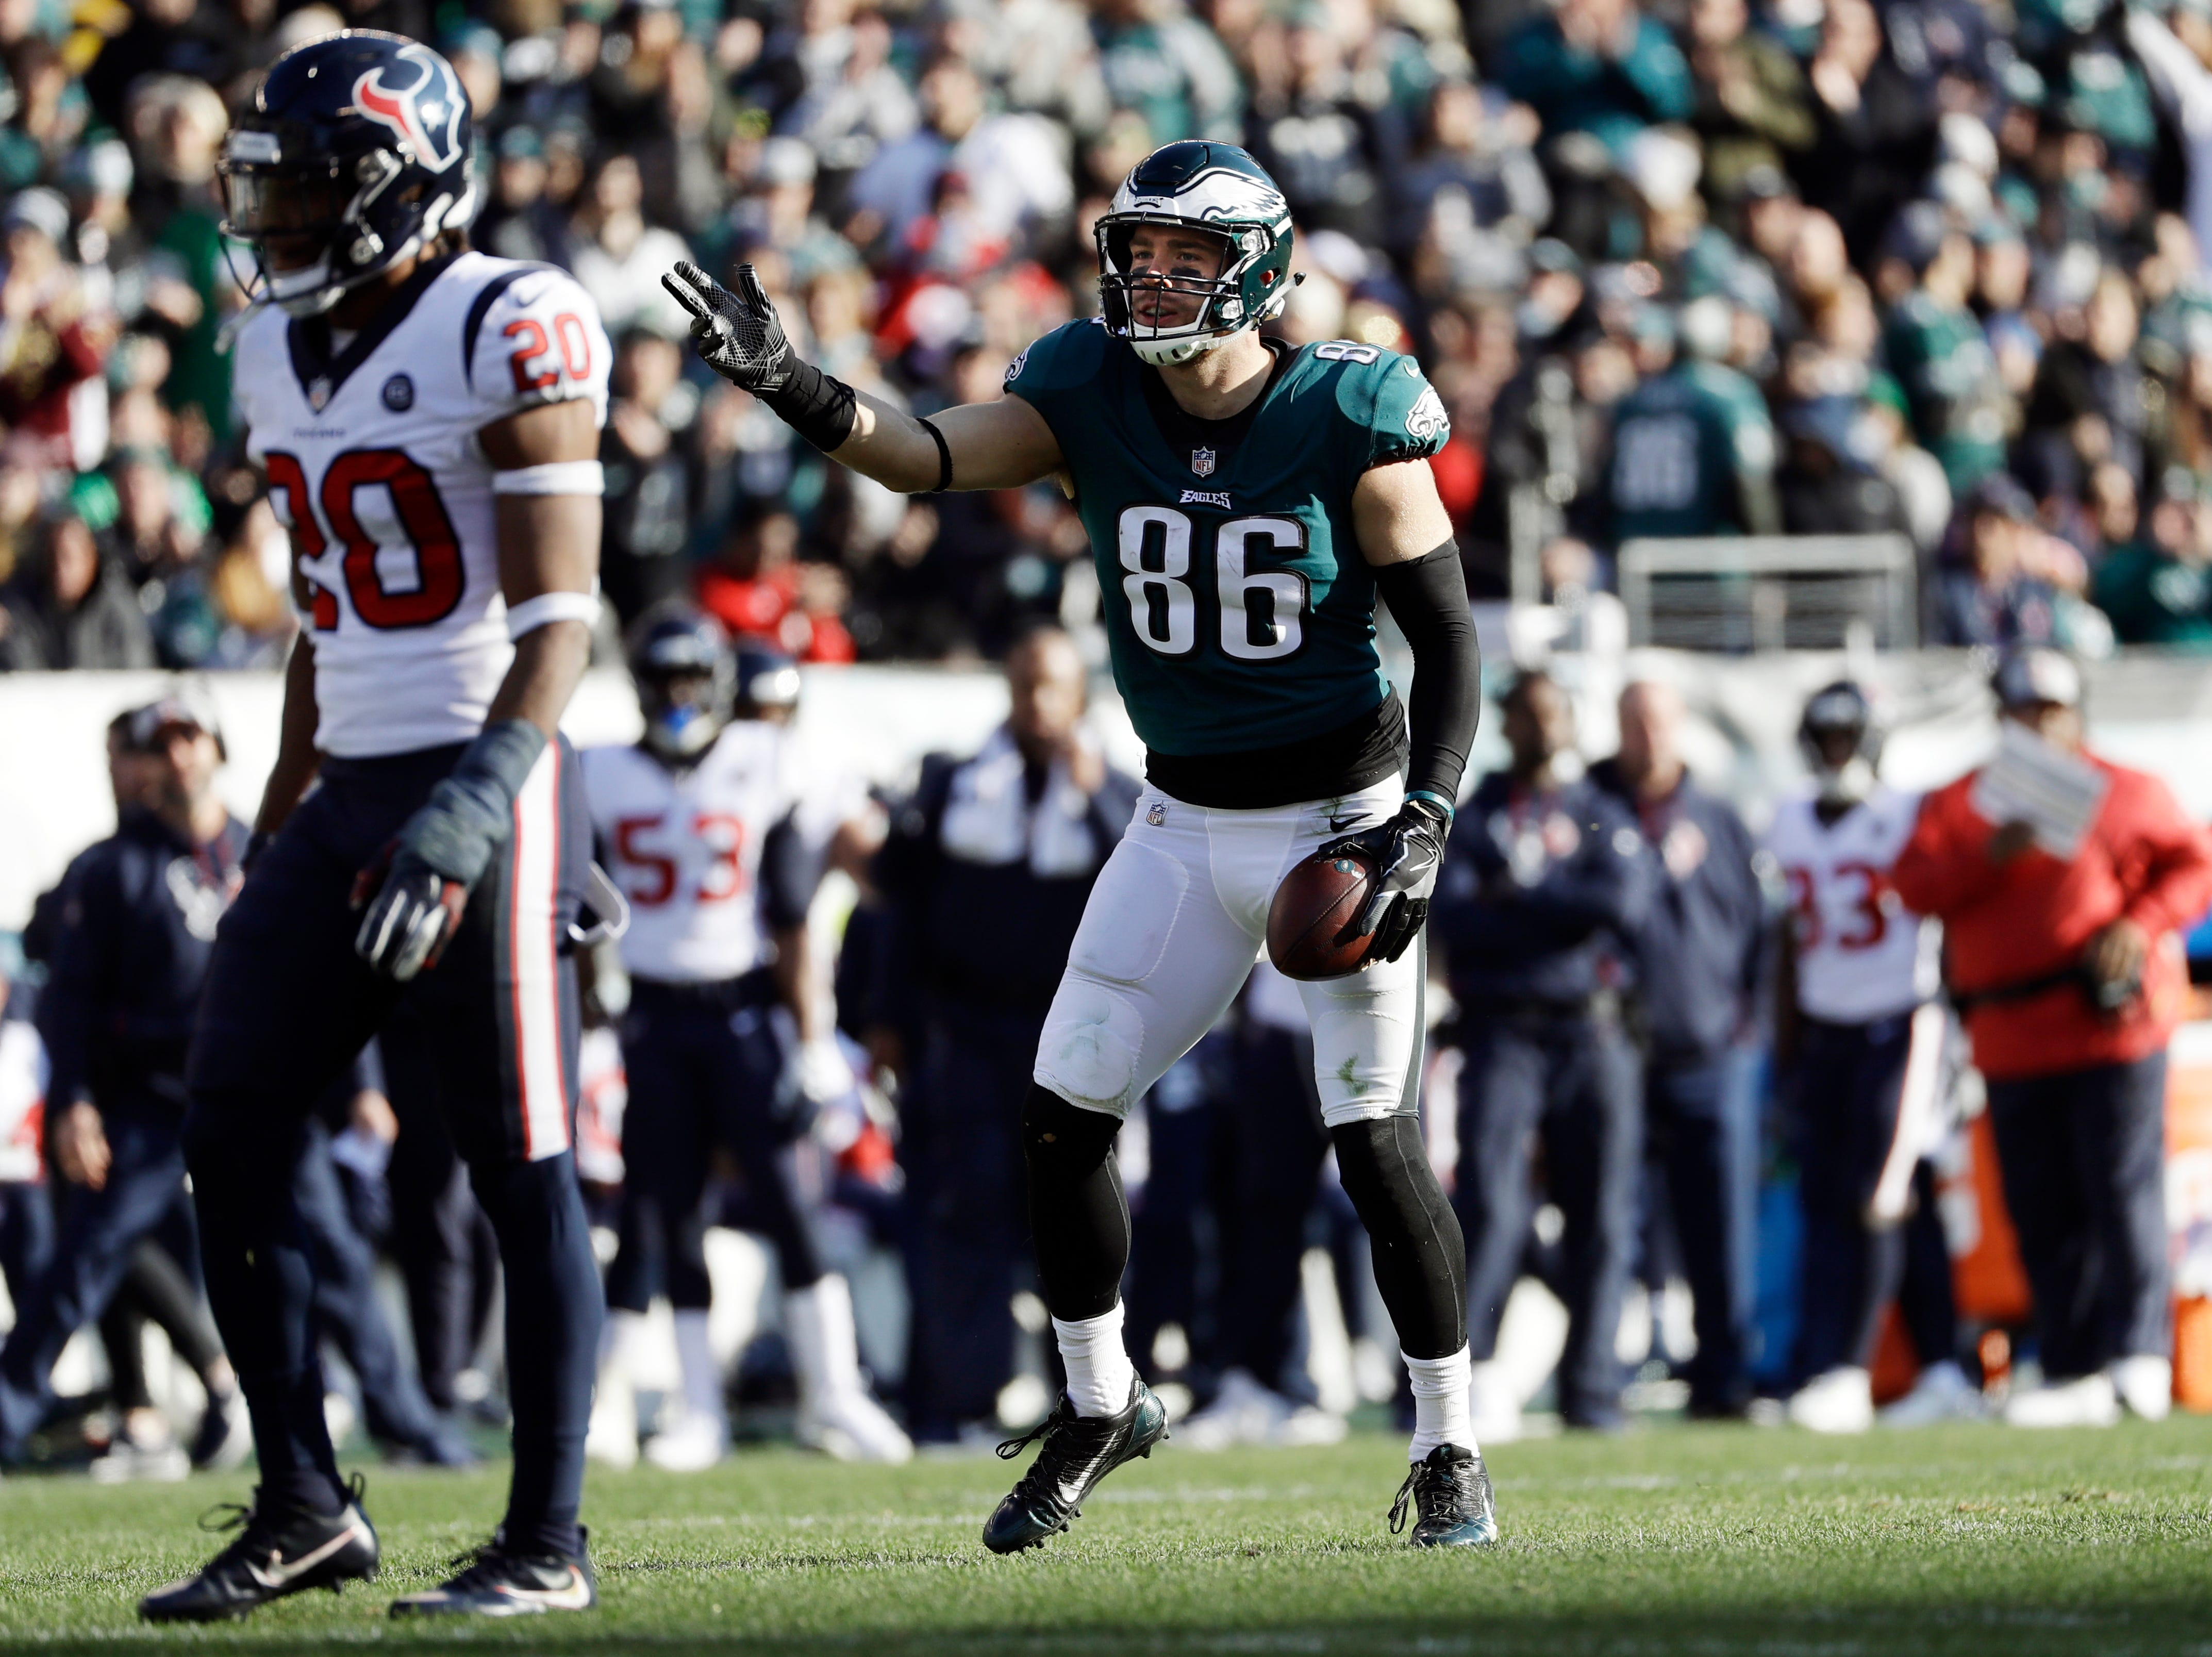 Philadelphia Eagles' Zach Ertz reacts after catching a pass during the first half of an NFL football game against the Houston Texans, Sunday, Dec. 23, 2018, in Philadelphia. (AP Photo/Michael Perez)